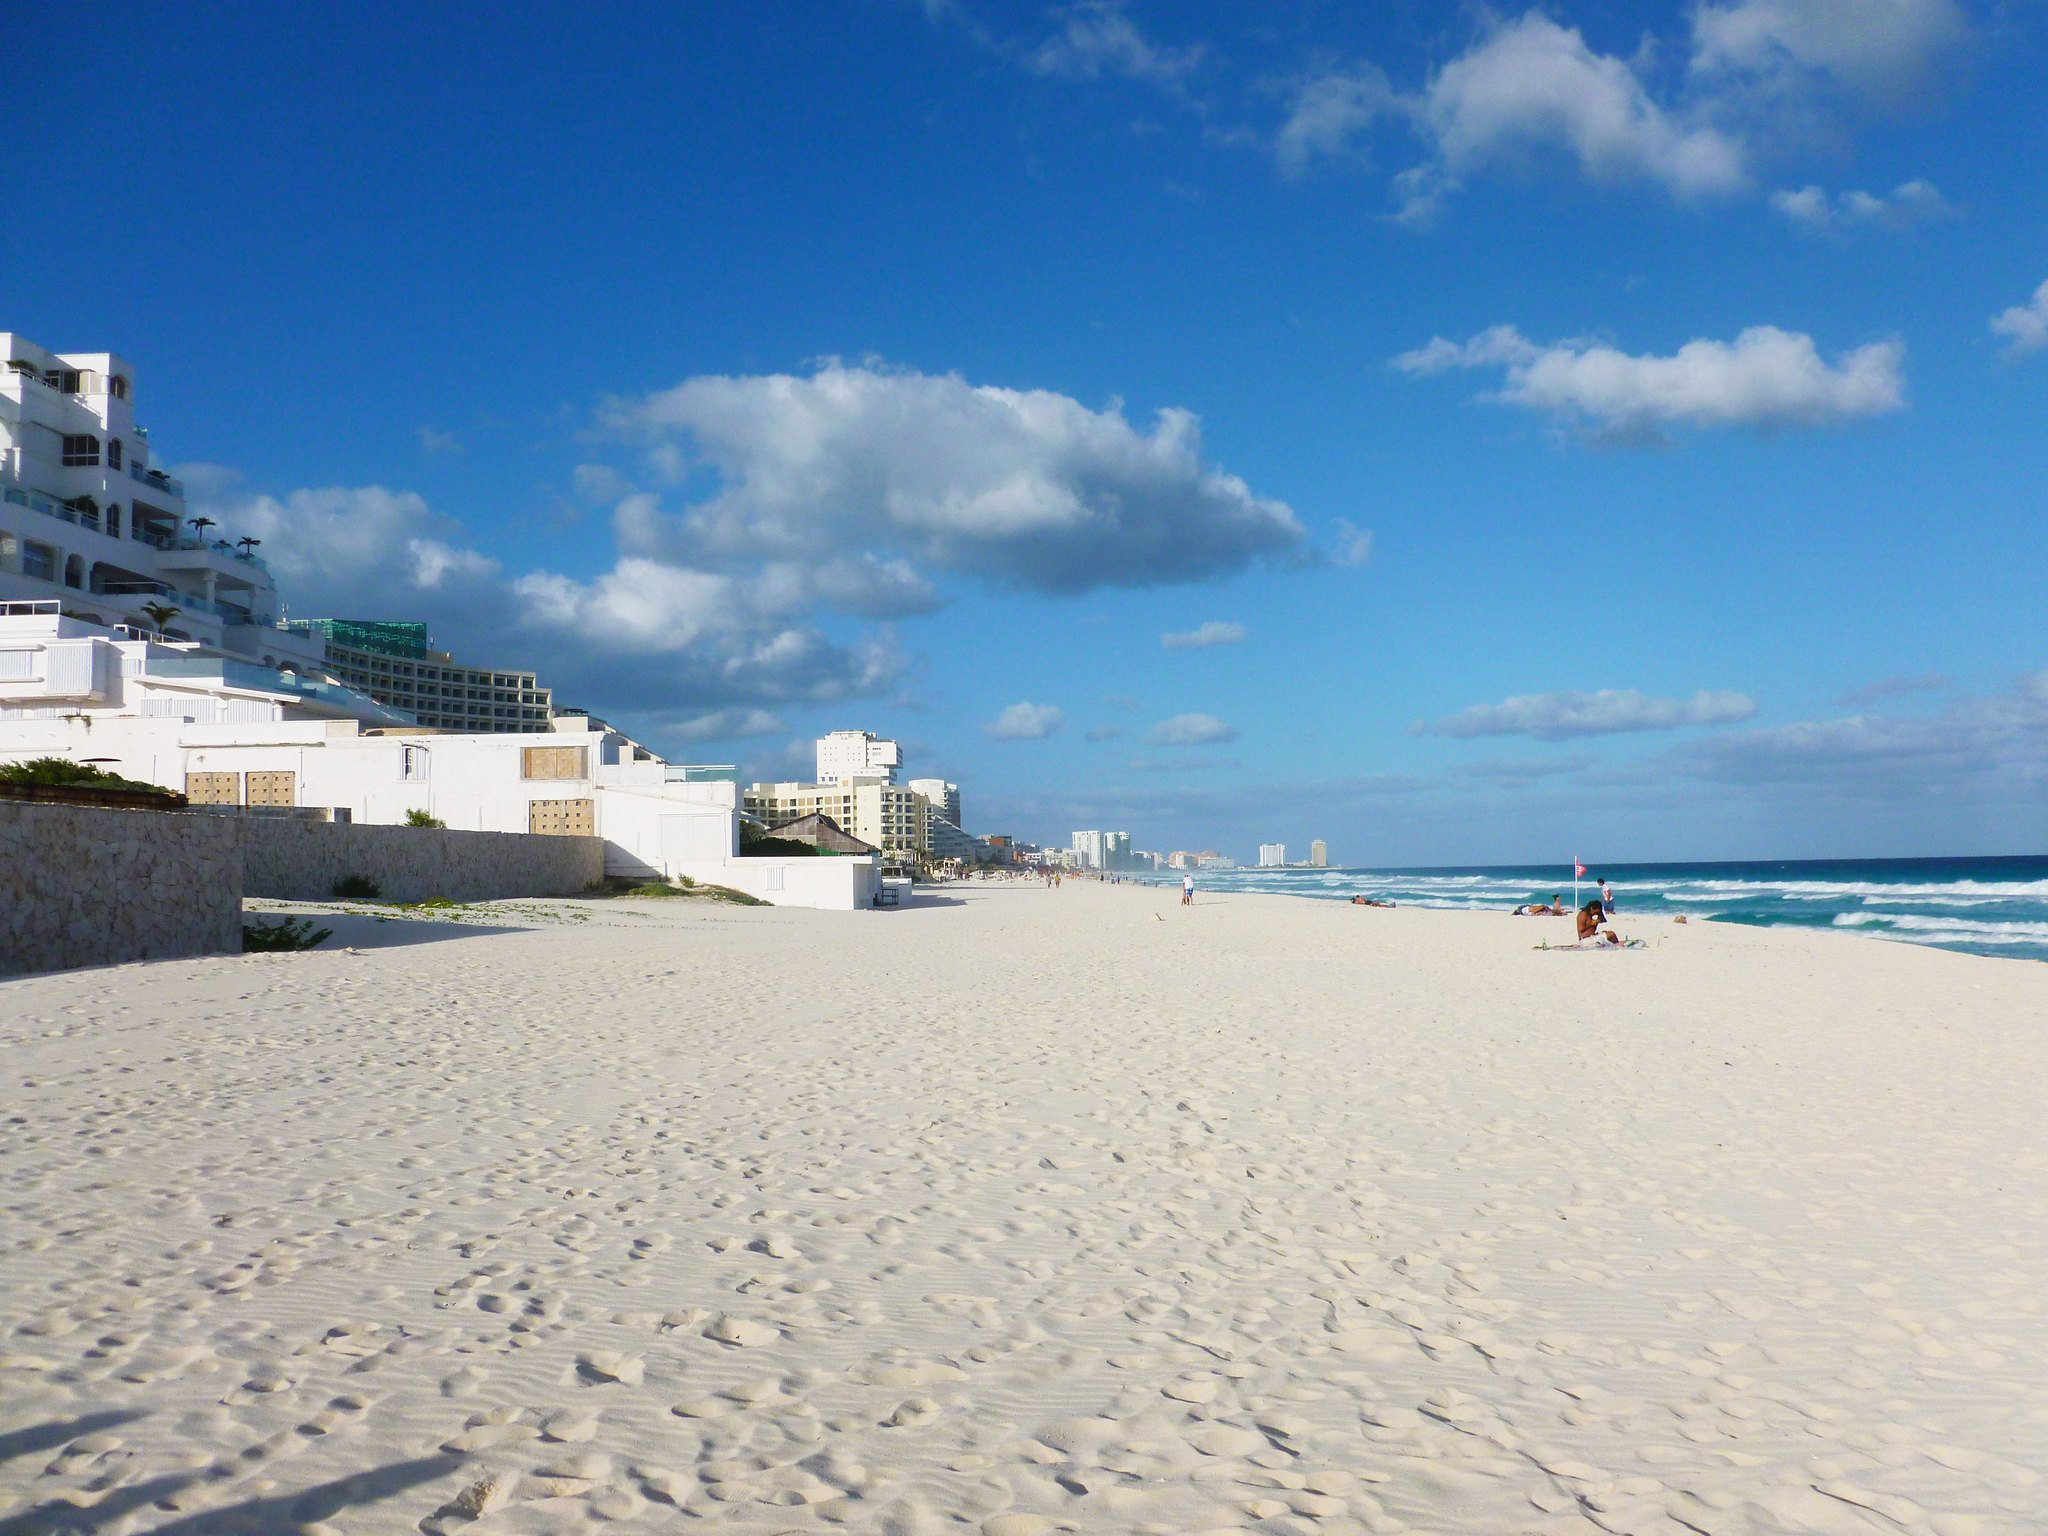 The Best Beaches in Cancun, Mexico -Top 10 Beaches in Cancun